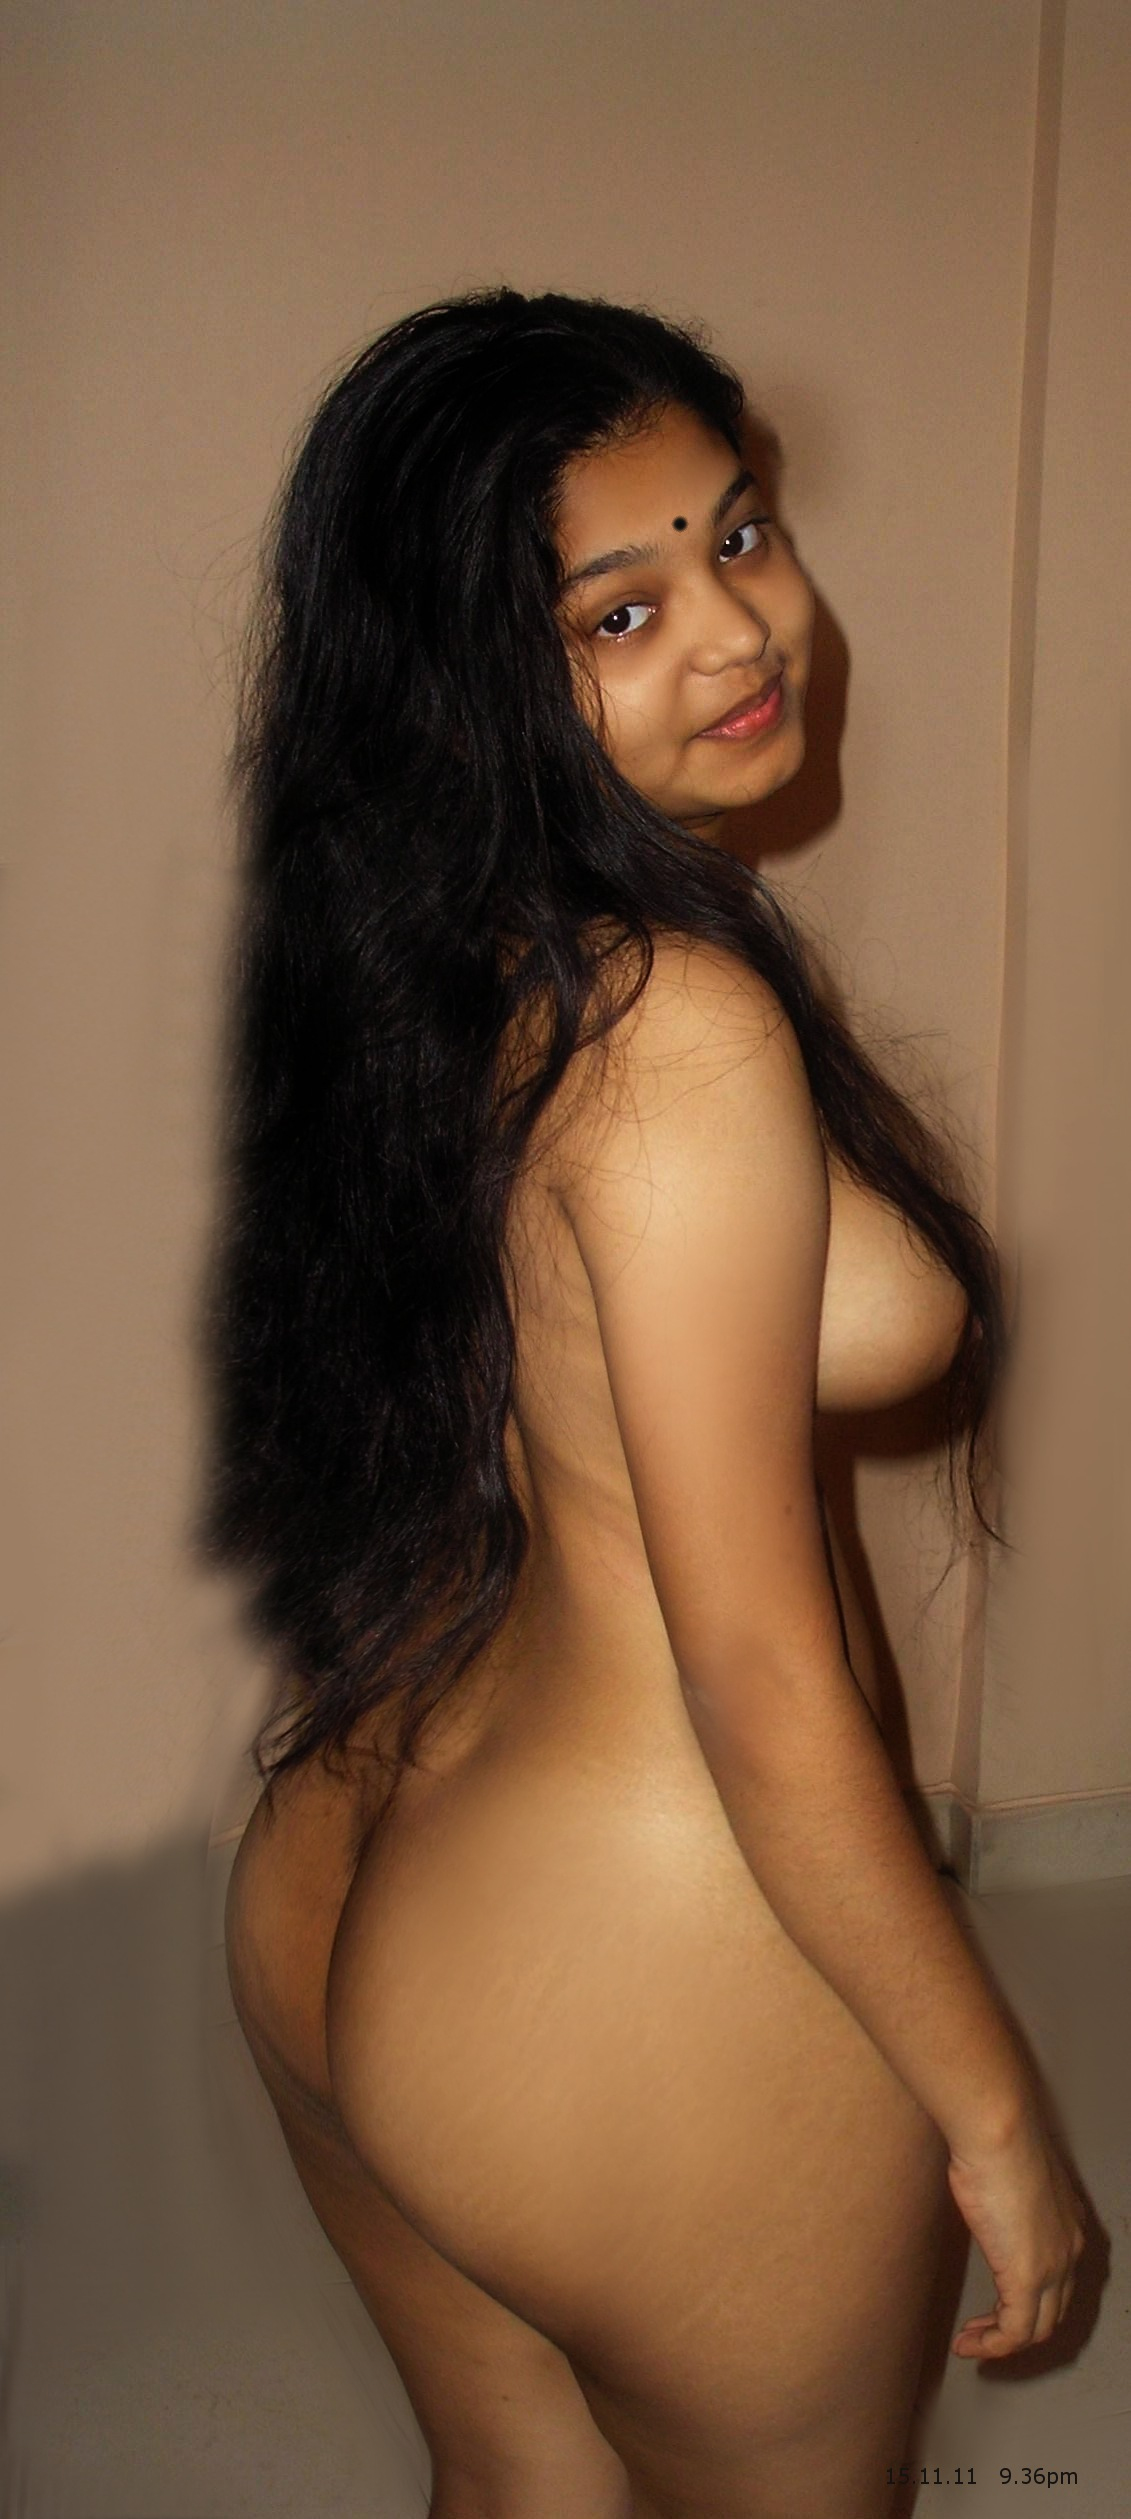 Desi College Girls Pics Hq For Android